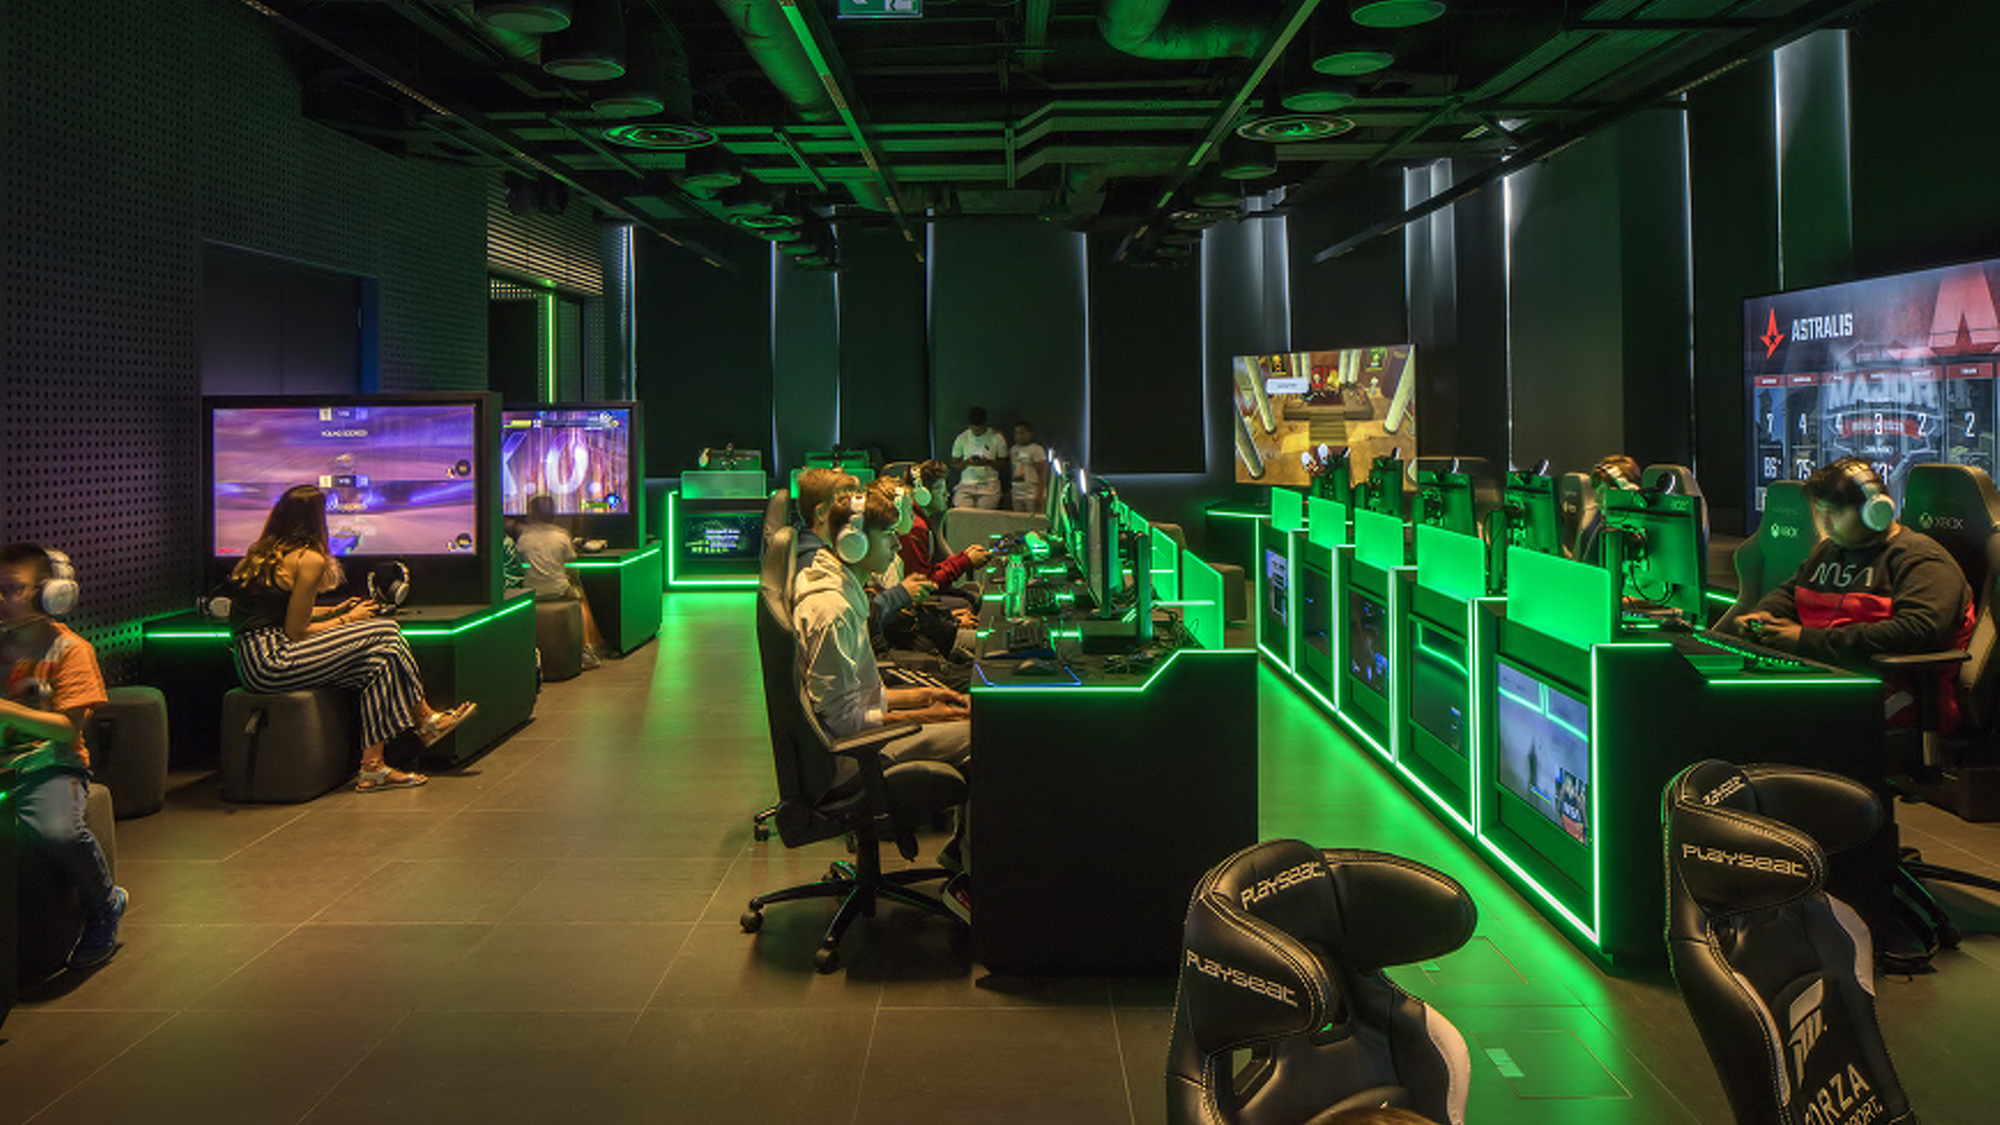 Gamers can play games and compete in e-tournaments in the Gaming Lounge